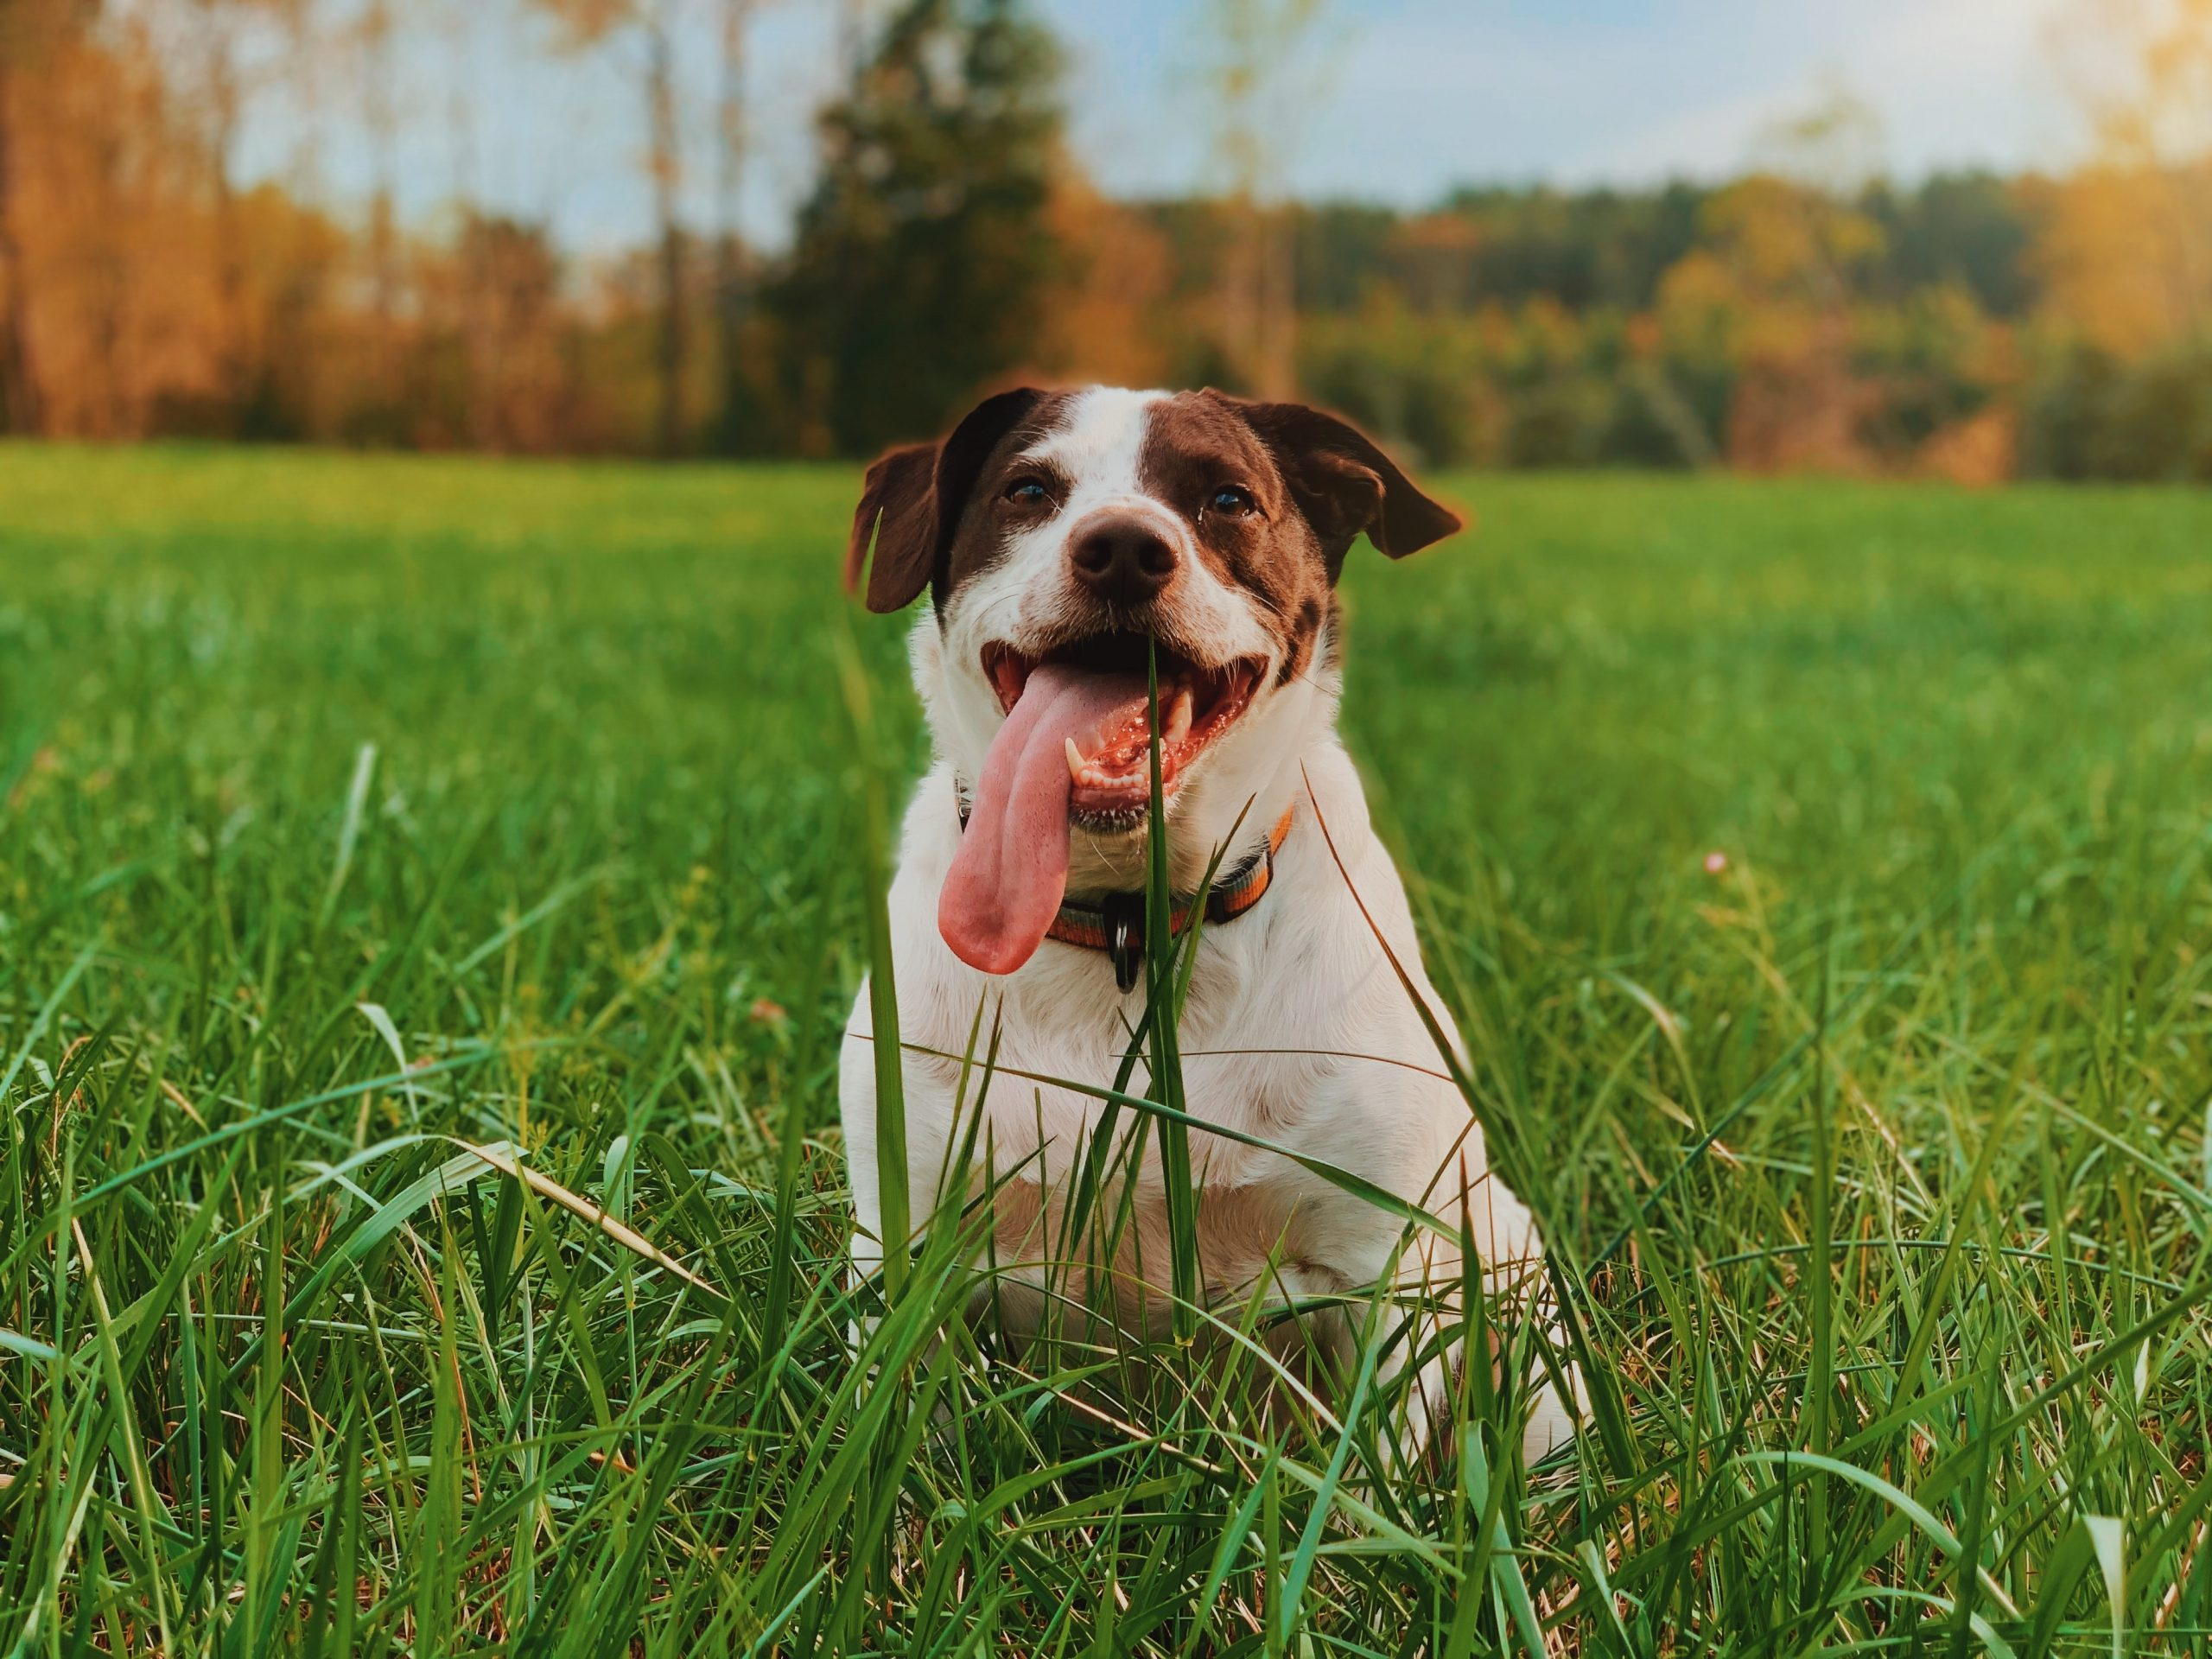 chemicals used to keep your lawn green can be harmful to your dog